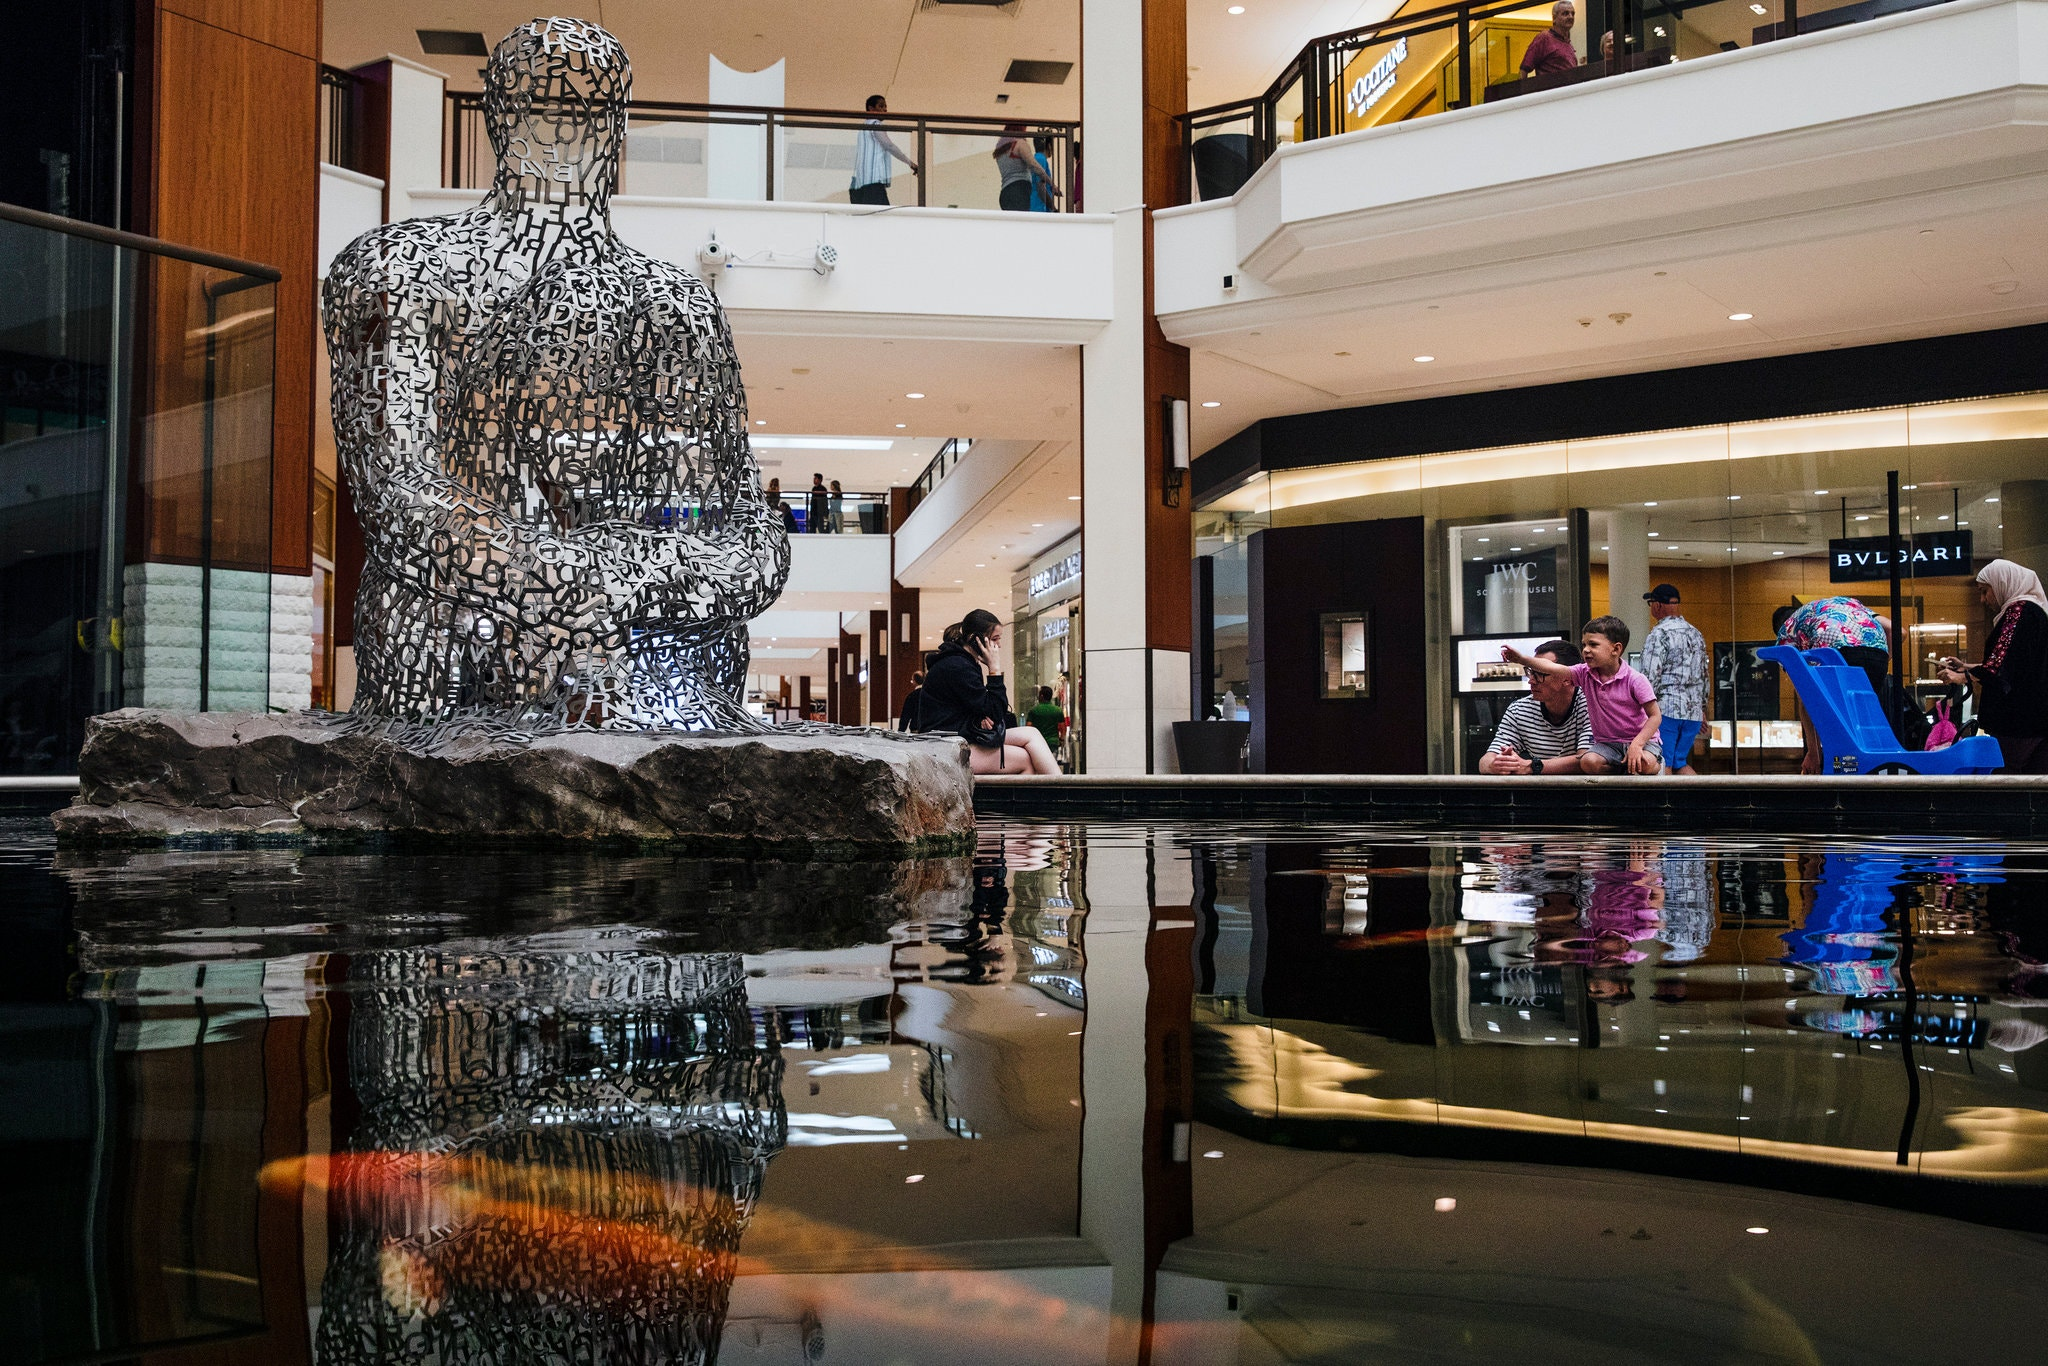 A koi pond and a sculpture by Jaume Plensa on the lower level of the mall.Credit...Scott McIntyre for The New York Times